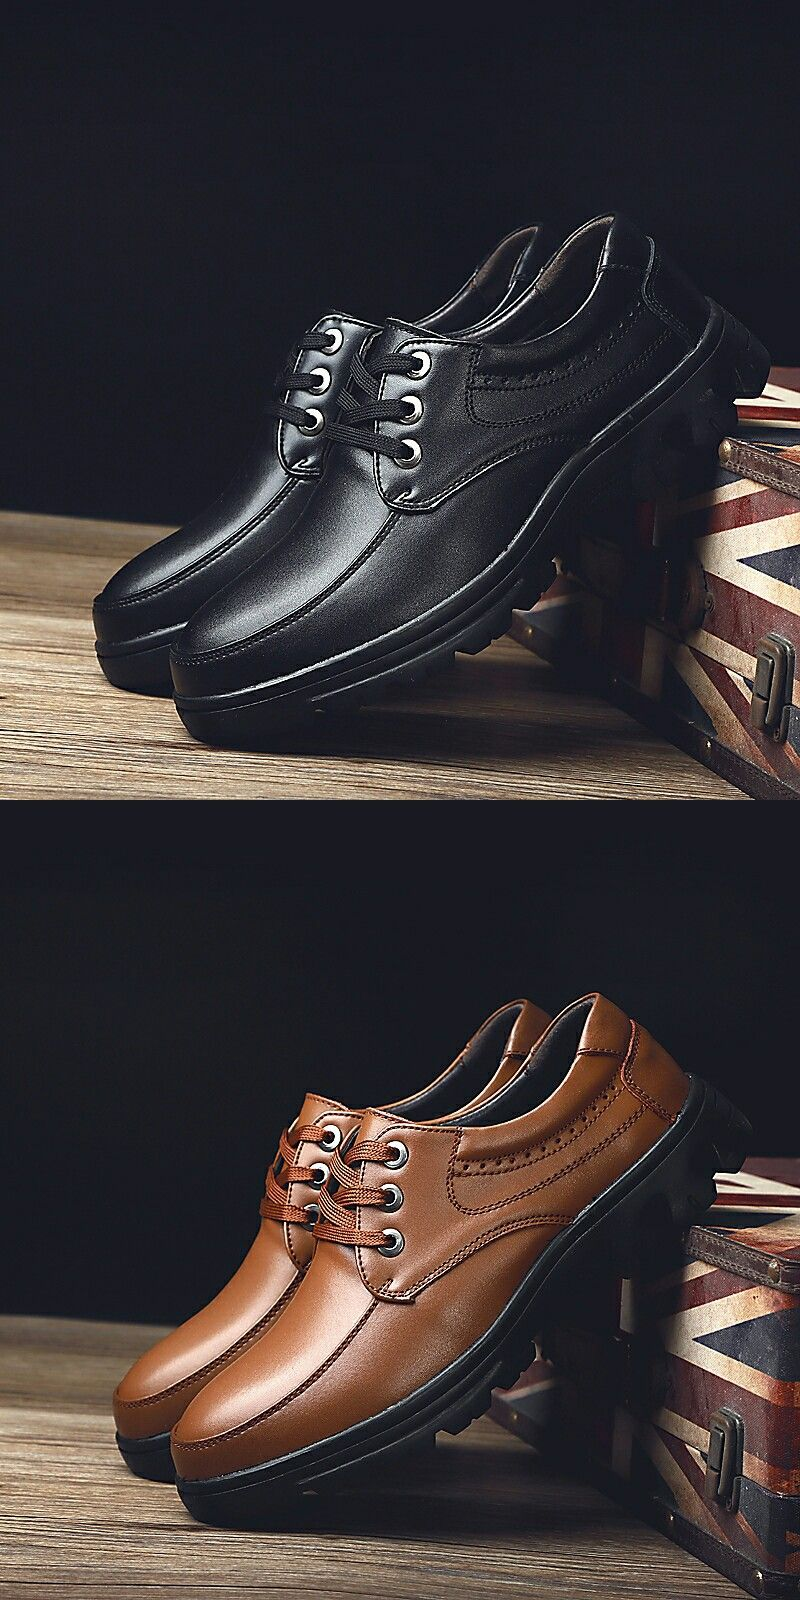 9bb2c619305 US  32.8 Prelesty Big Size Men Formal Shoes Gentleman Oxford Brogue Party  Lace Up Design High